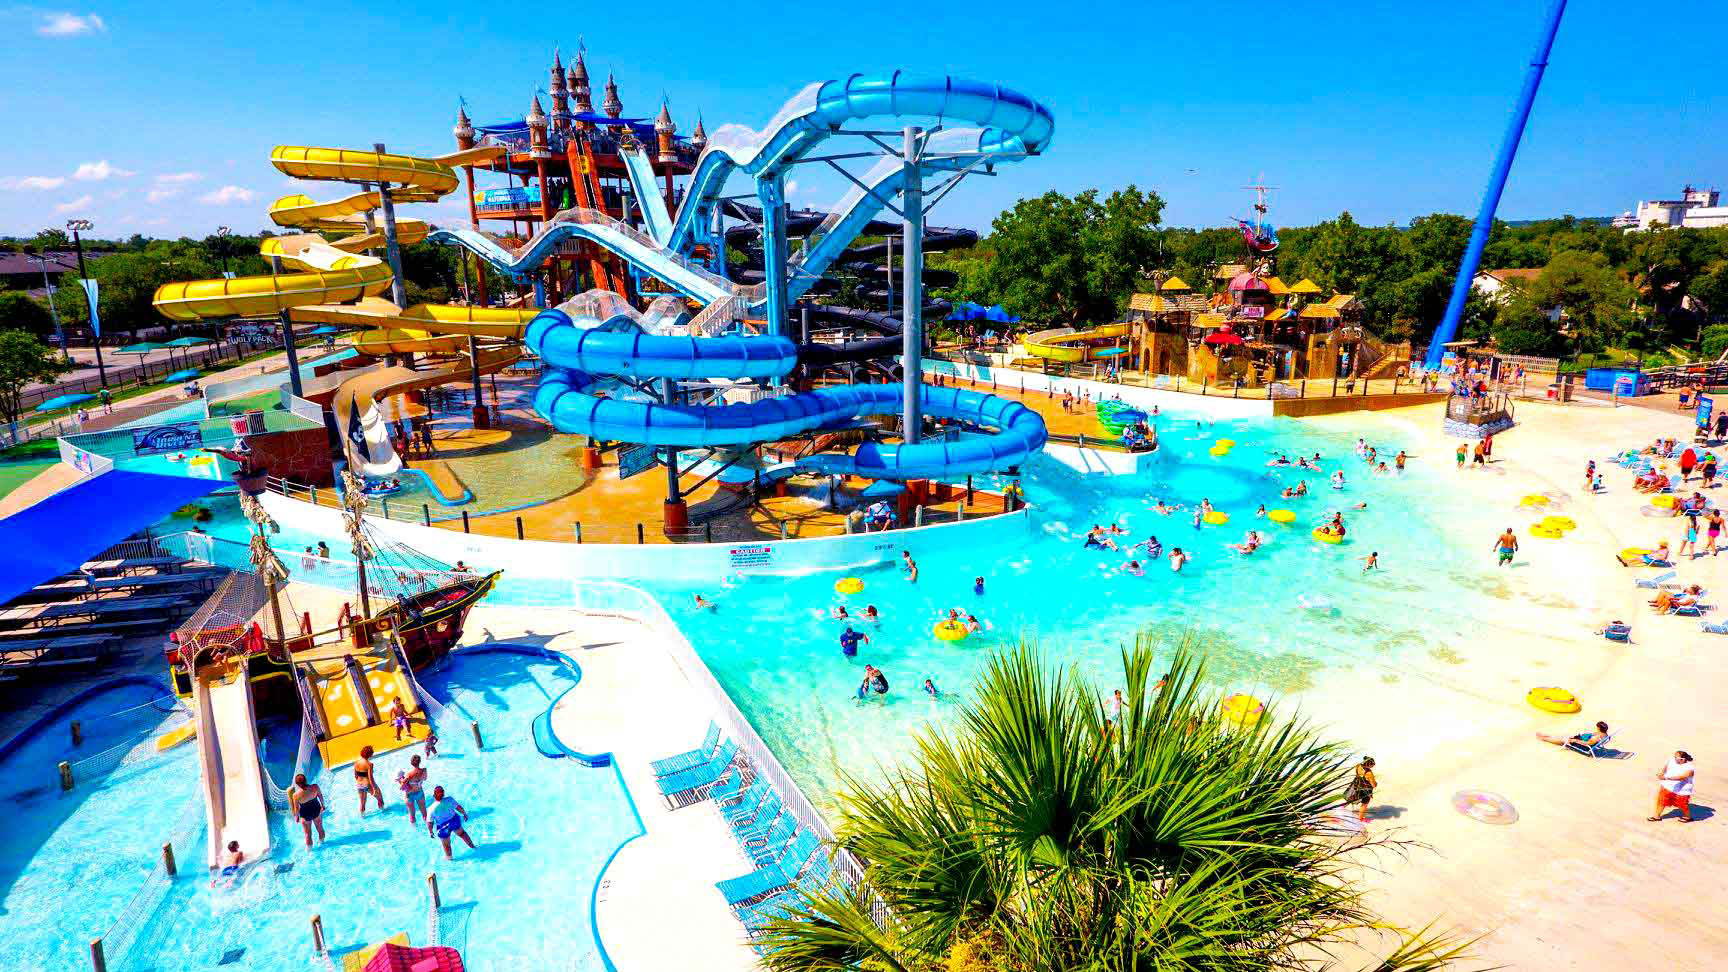 Image of Schlitterbahn Waterparks & Resorts